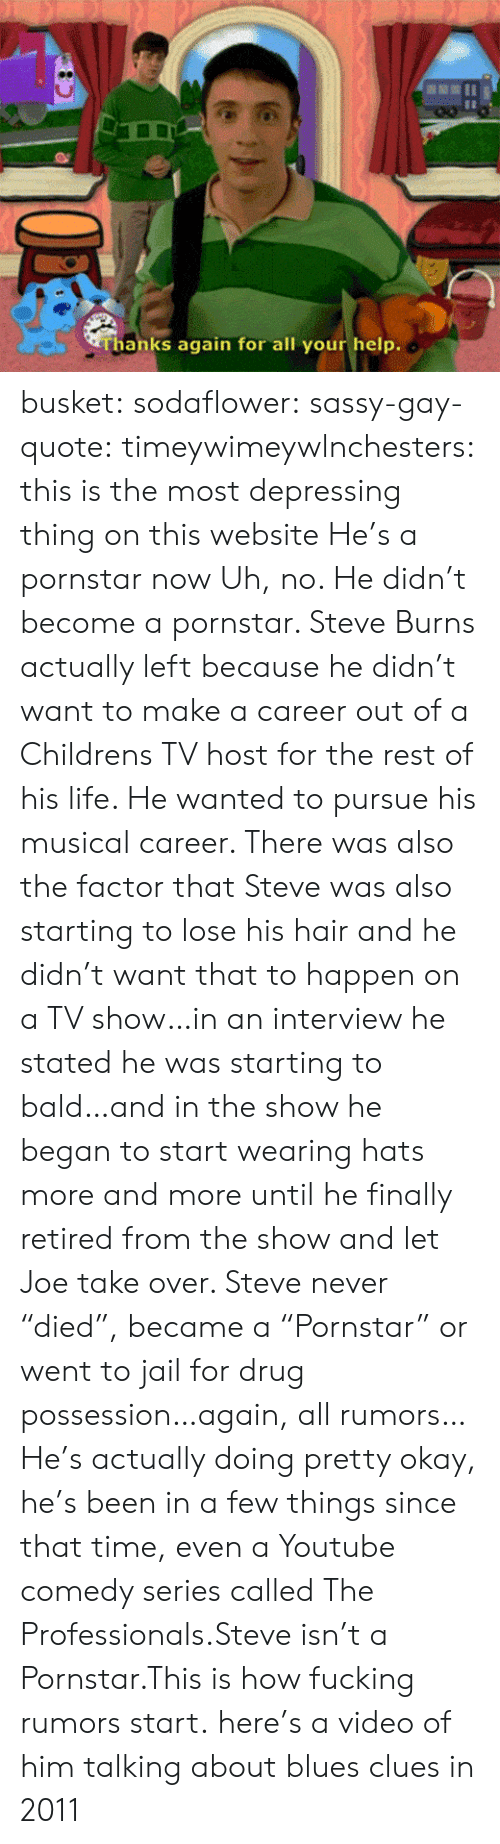 """Blues: Thanks again for all your help. busket: sodaflower:  sassy-gay-quote:  timeywimeywlnchesters:  this is the most depressing thing on this website  He's a pornstar now  Uh, no. He didn't become a pornstar. Steve Burns actually left because he didn't want to make a career out of a Childrens TV host for the rest of his life. He wanted to pursue his musical career. There was also the factor that Steve was also starting to lose his hair and he didn't want that to happen on a TV show…in an interview he stated he was starting to bald…and in the show he began to start wearing hats more and more until he finally retired from the show and let Joe take over. Steve never """"died"""", became a """"Pornstar"""" or went to jail for drug possession…again, all rumors… He's actually doing pretty okay, he's been in a few things since that time, even a Youtube comedy series called The Professionals.Steve isn't a Pornstar.This is how fucking rumors start.  here's a video of him talking about blues clues in 2011"""